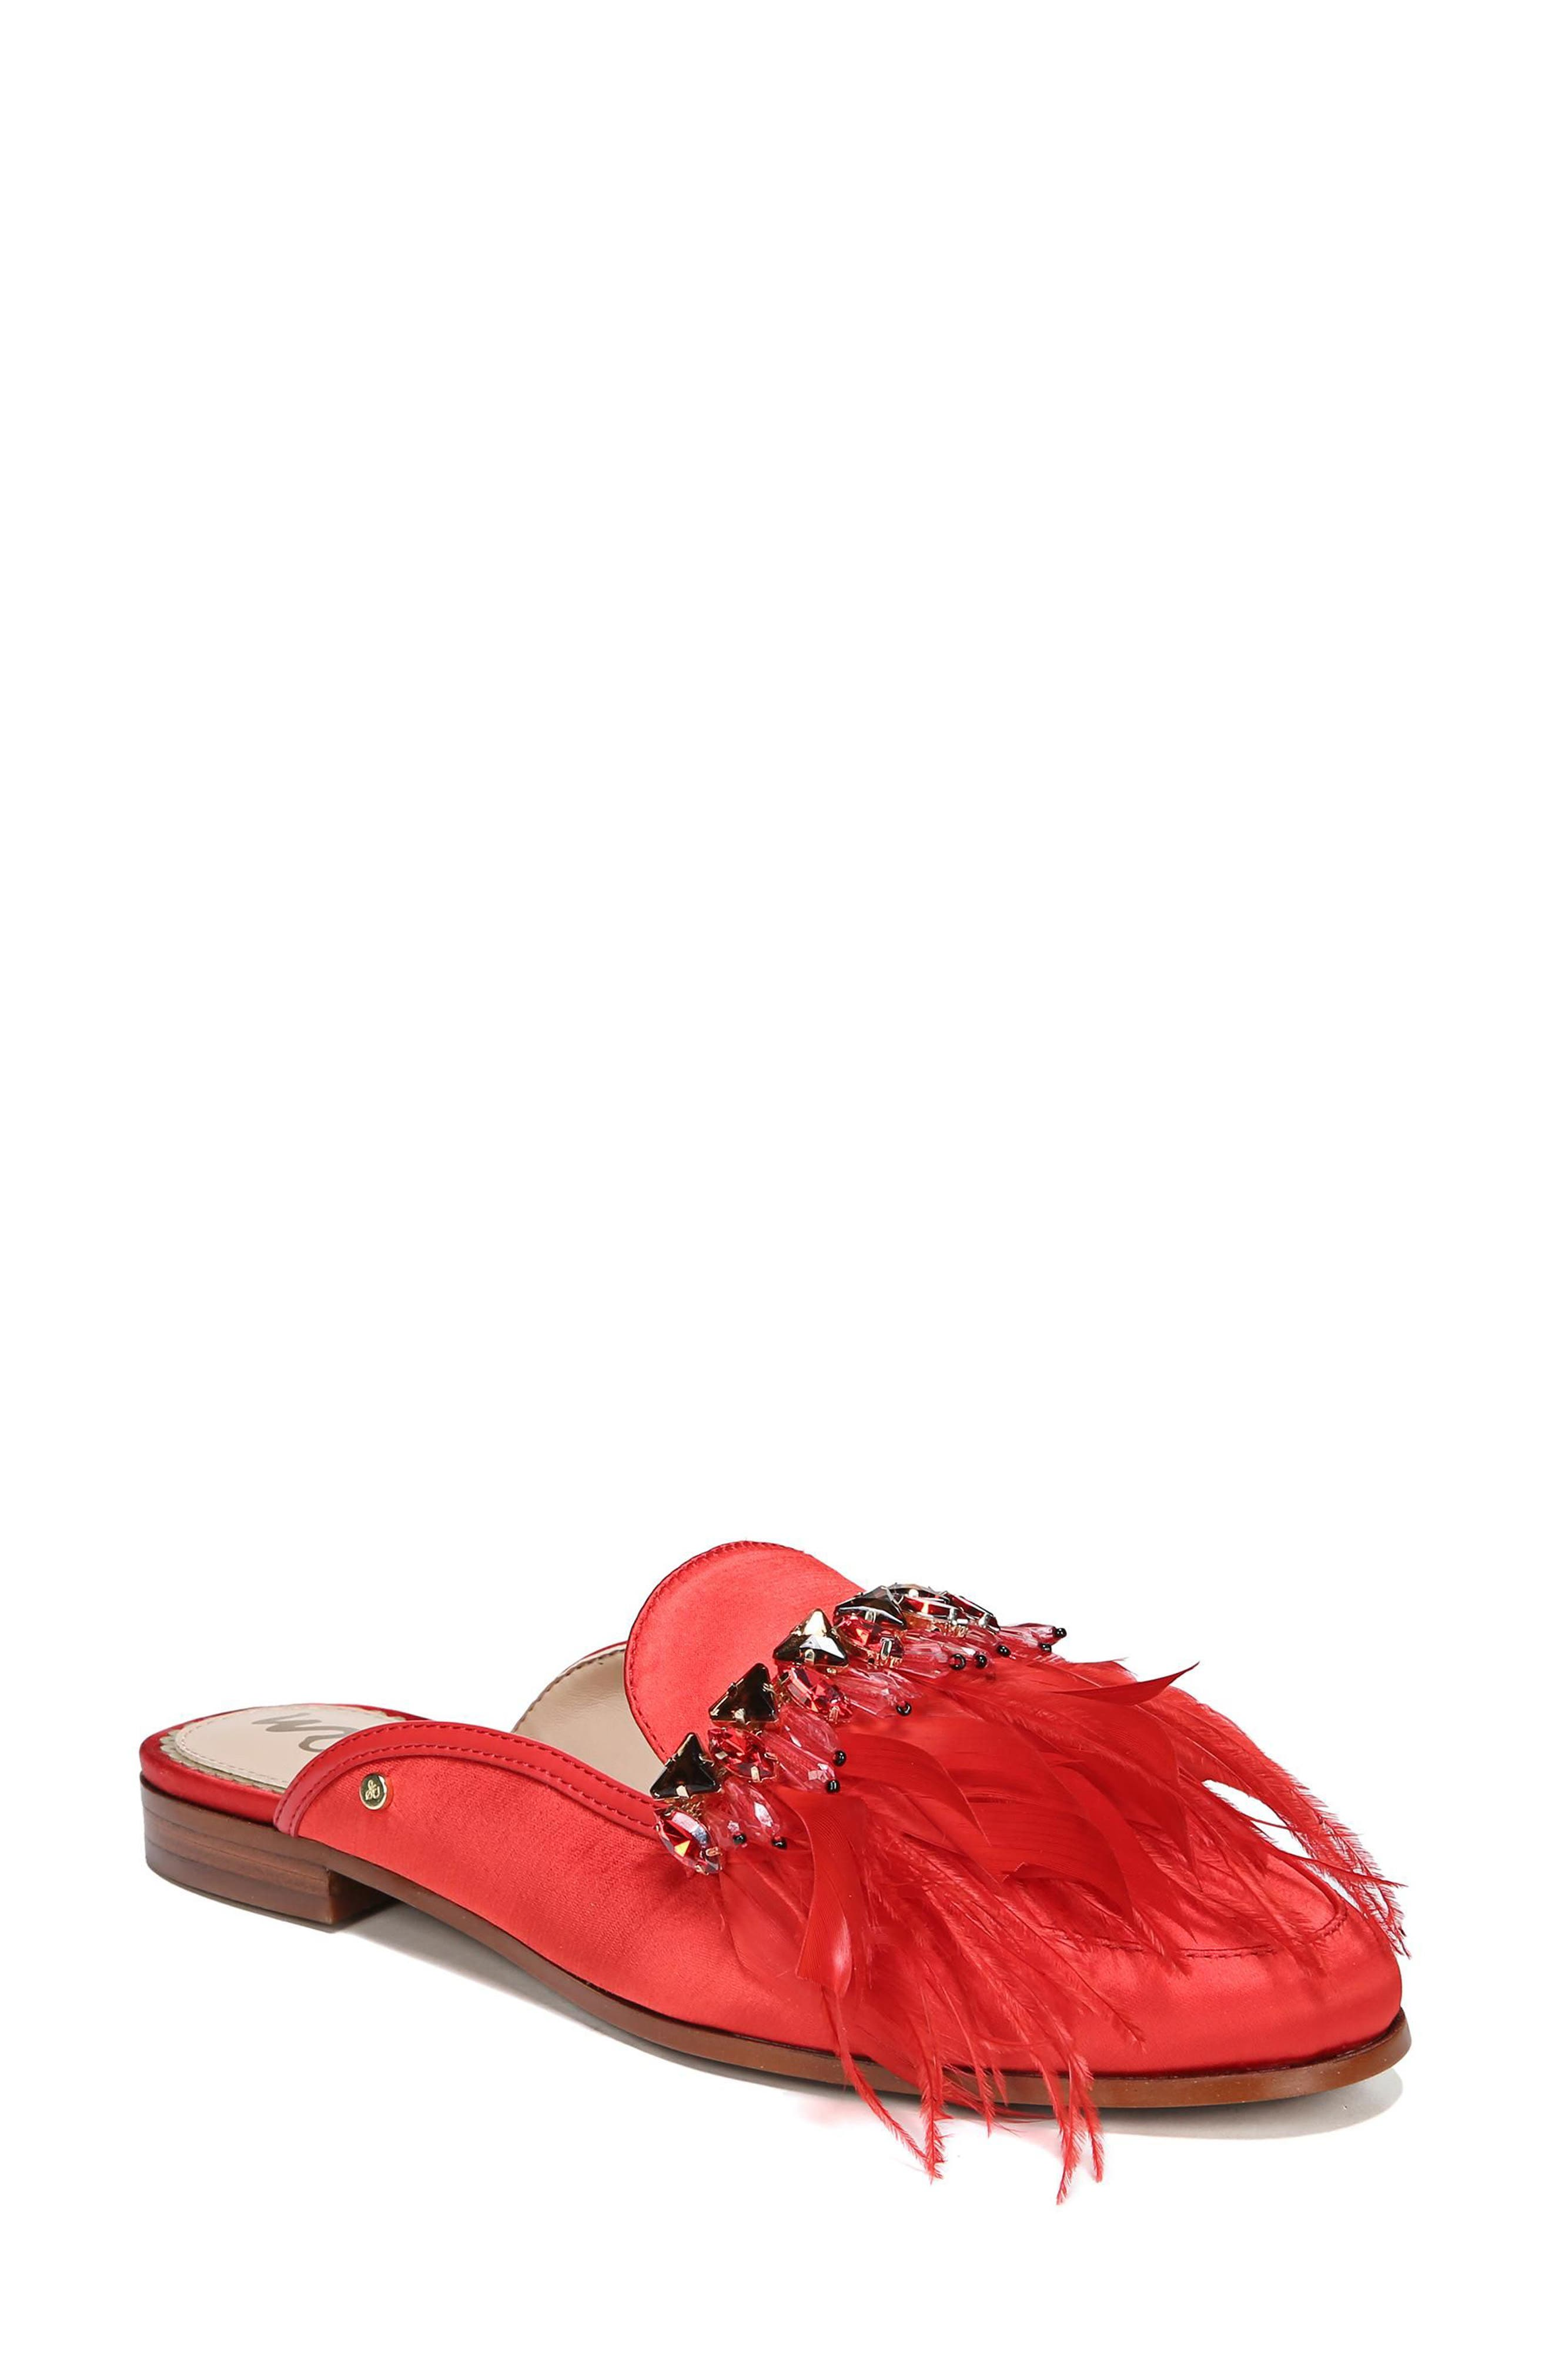 Main Image - Sam Edelman Landis Feather Mule (Women)